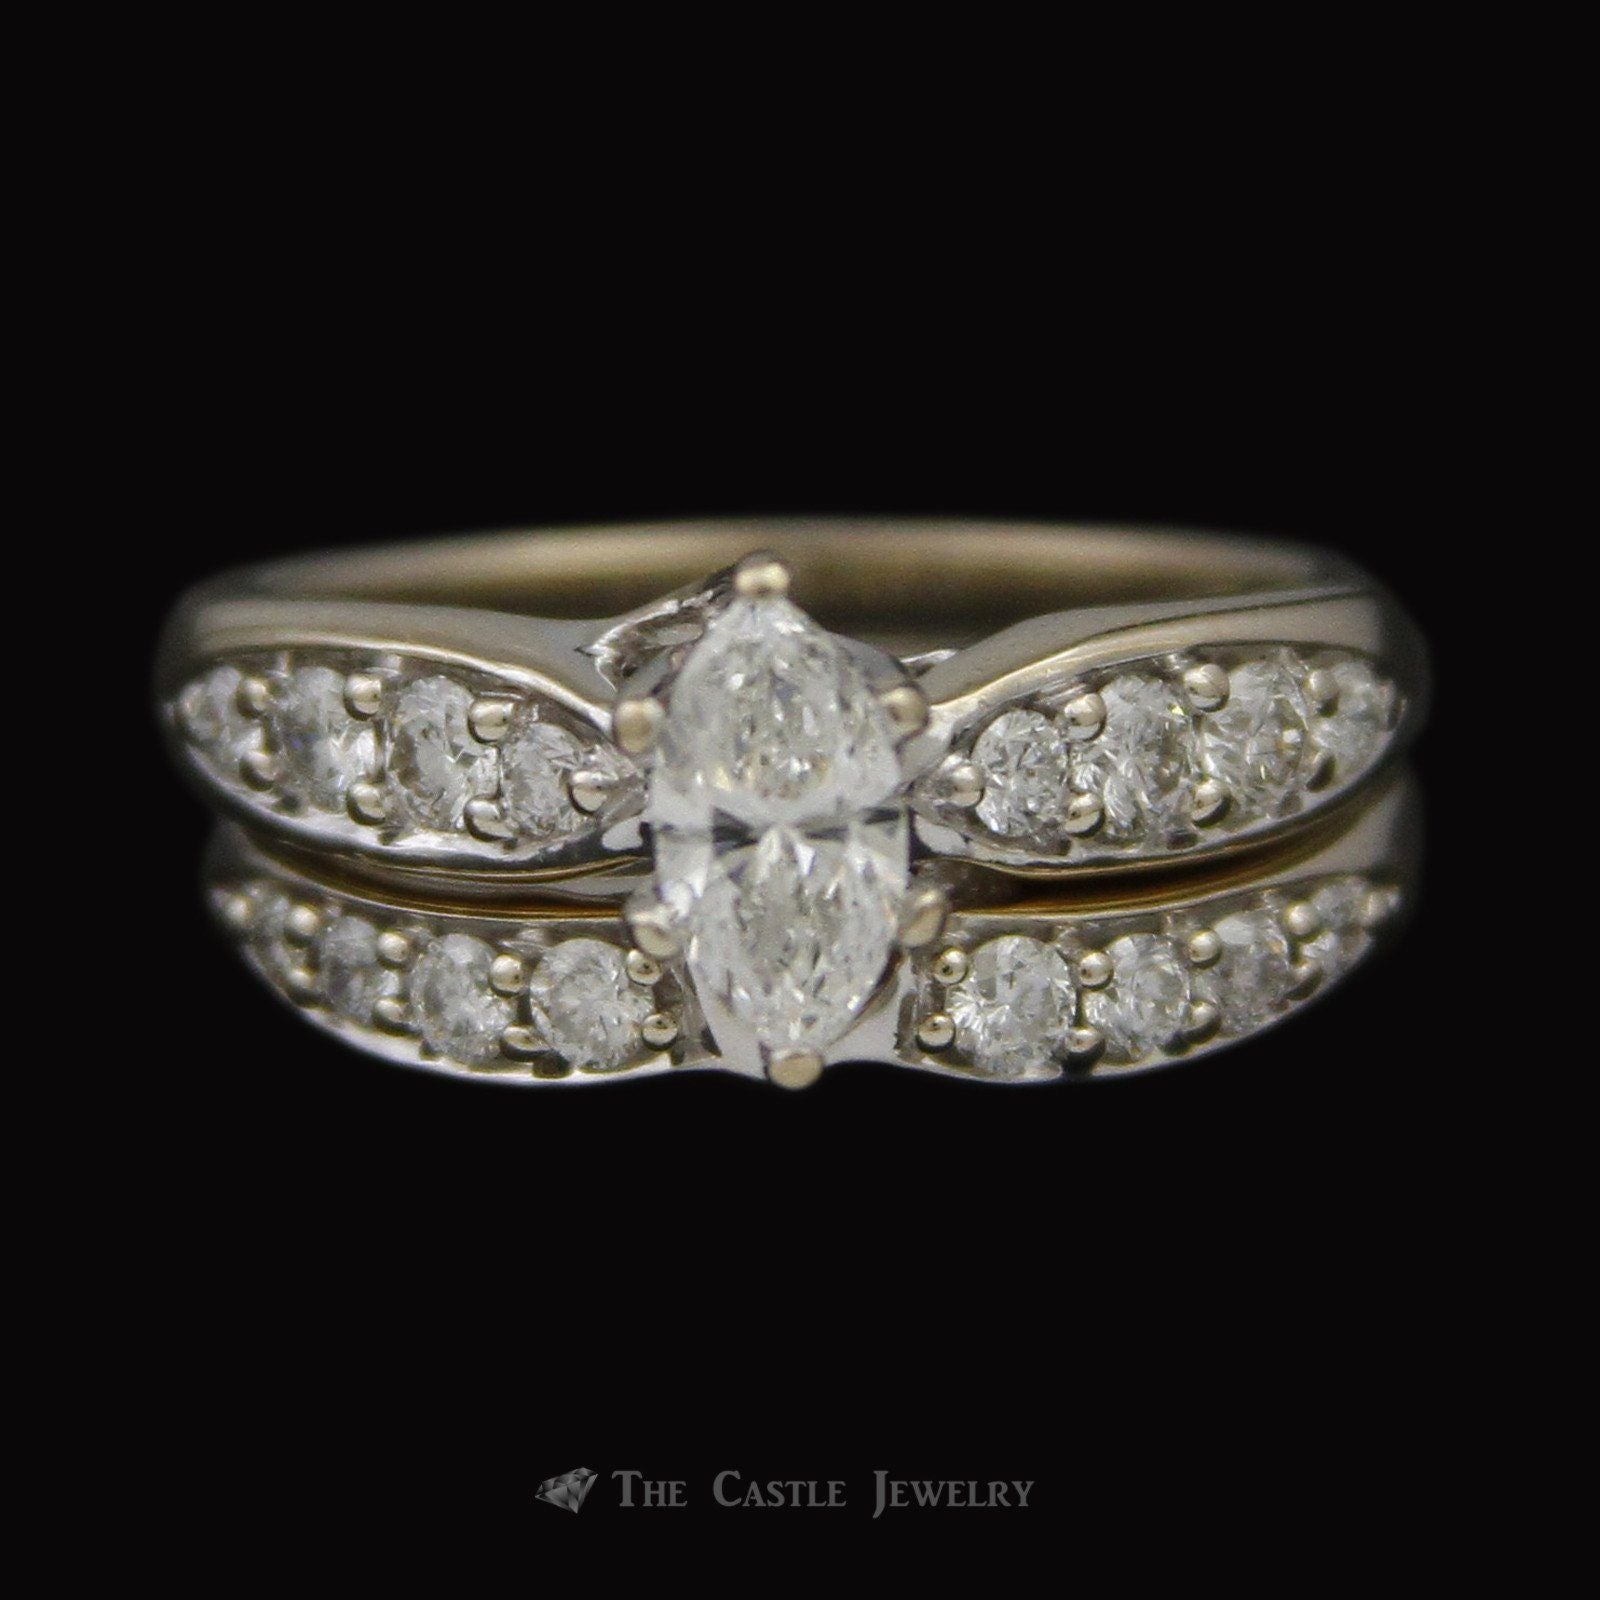 Marquise Diamond Bridal Set with Round Diamond Sides & Fitted Band Crafted in 18K White Gold